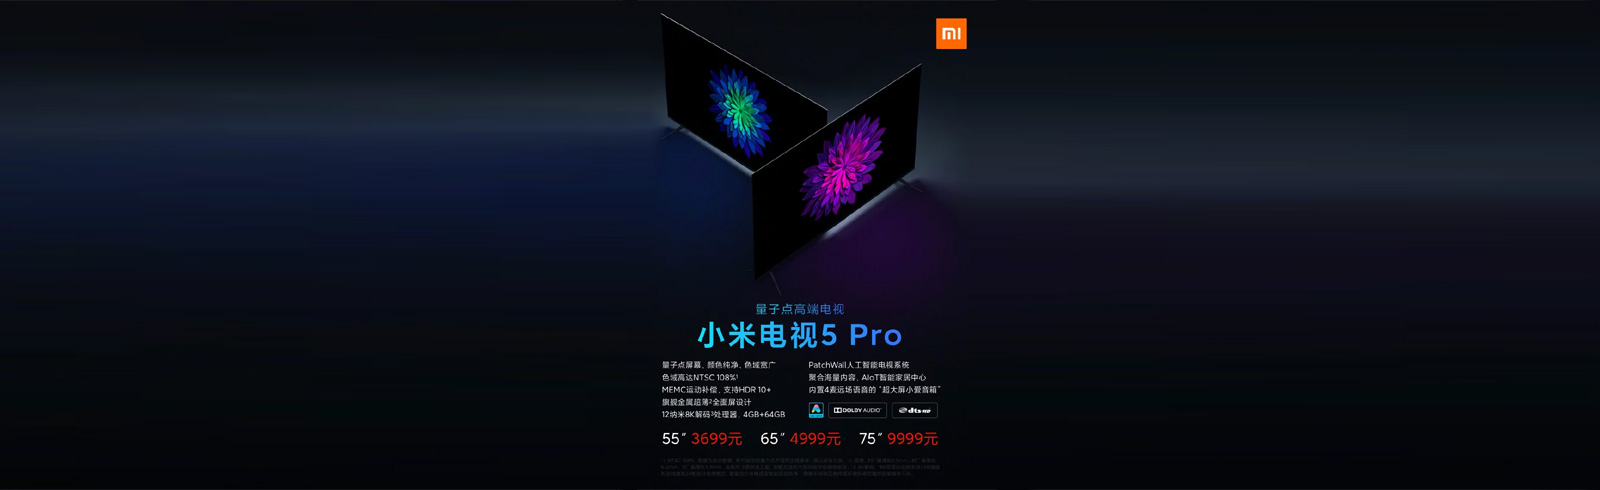 The Xiaomi Mi TV 5 Pro series is announced, arrives in three sizes with 8K-decoding QLED panels